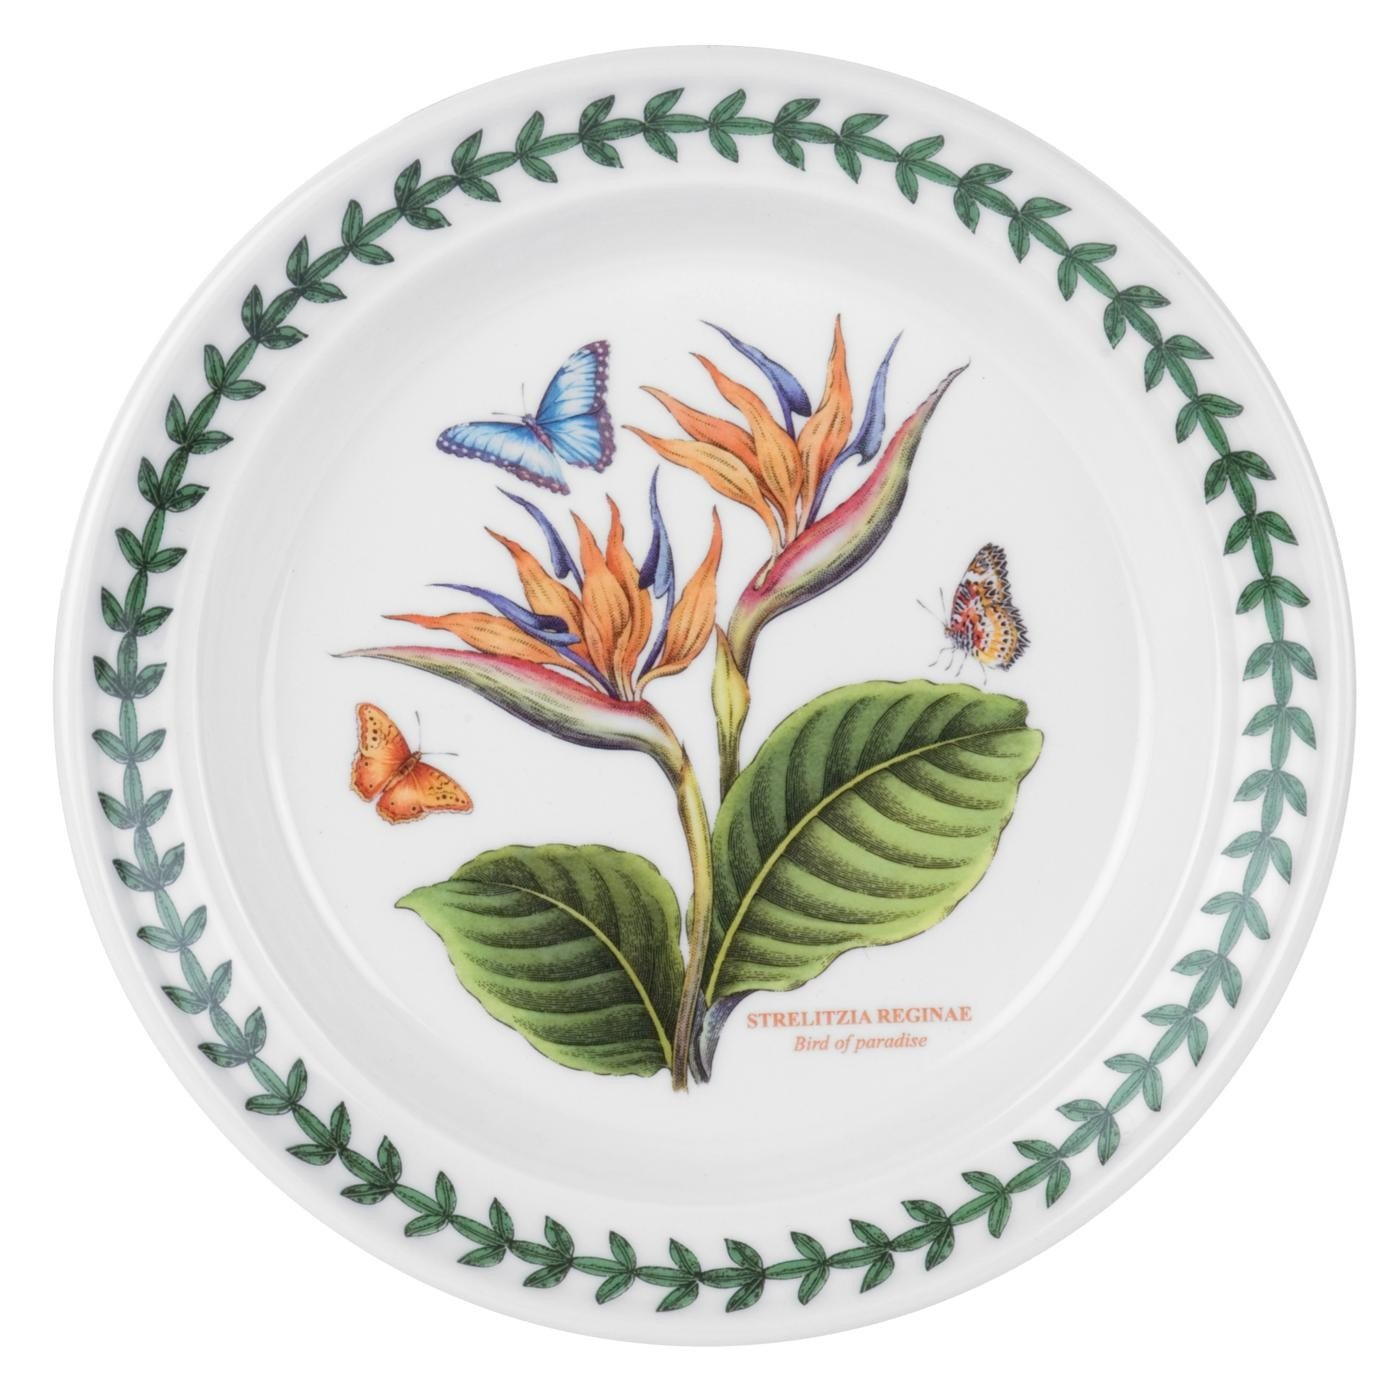 Portmeirion Exotic Botanic Garden Bread and Butter Plate with Bird of Paradise Motif by Portmeirion